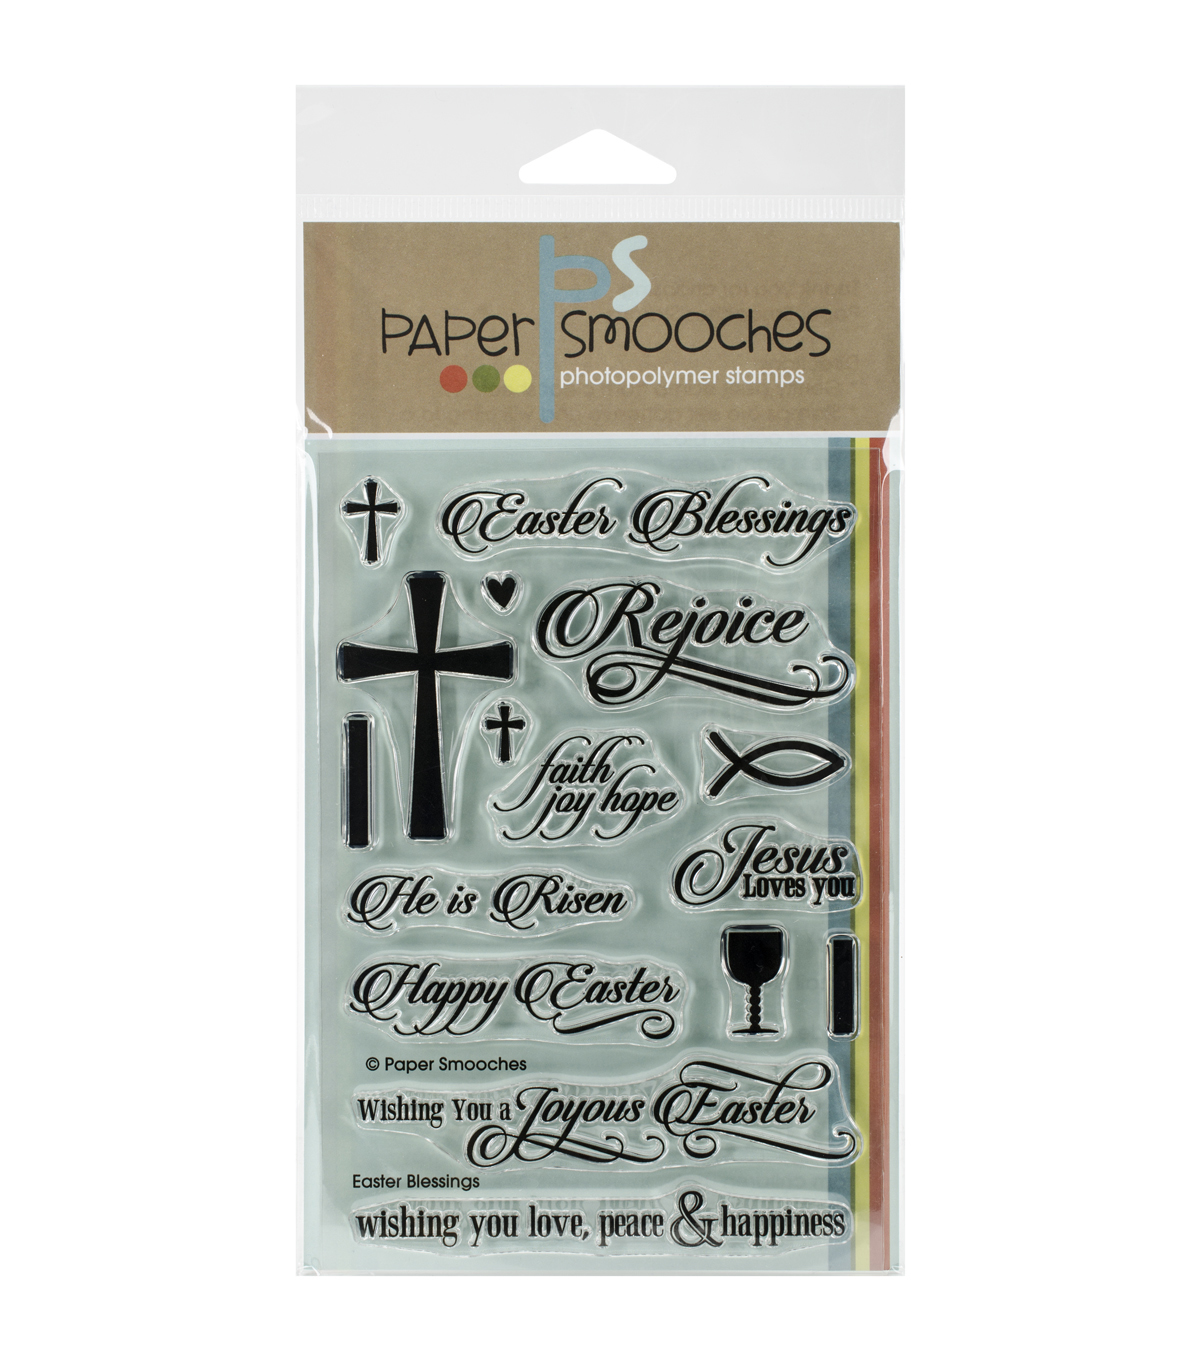 Paper Smooches Easter Blessings Clear Stamps